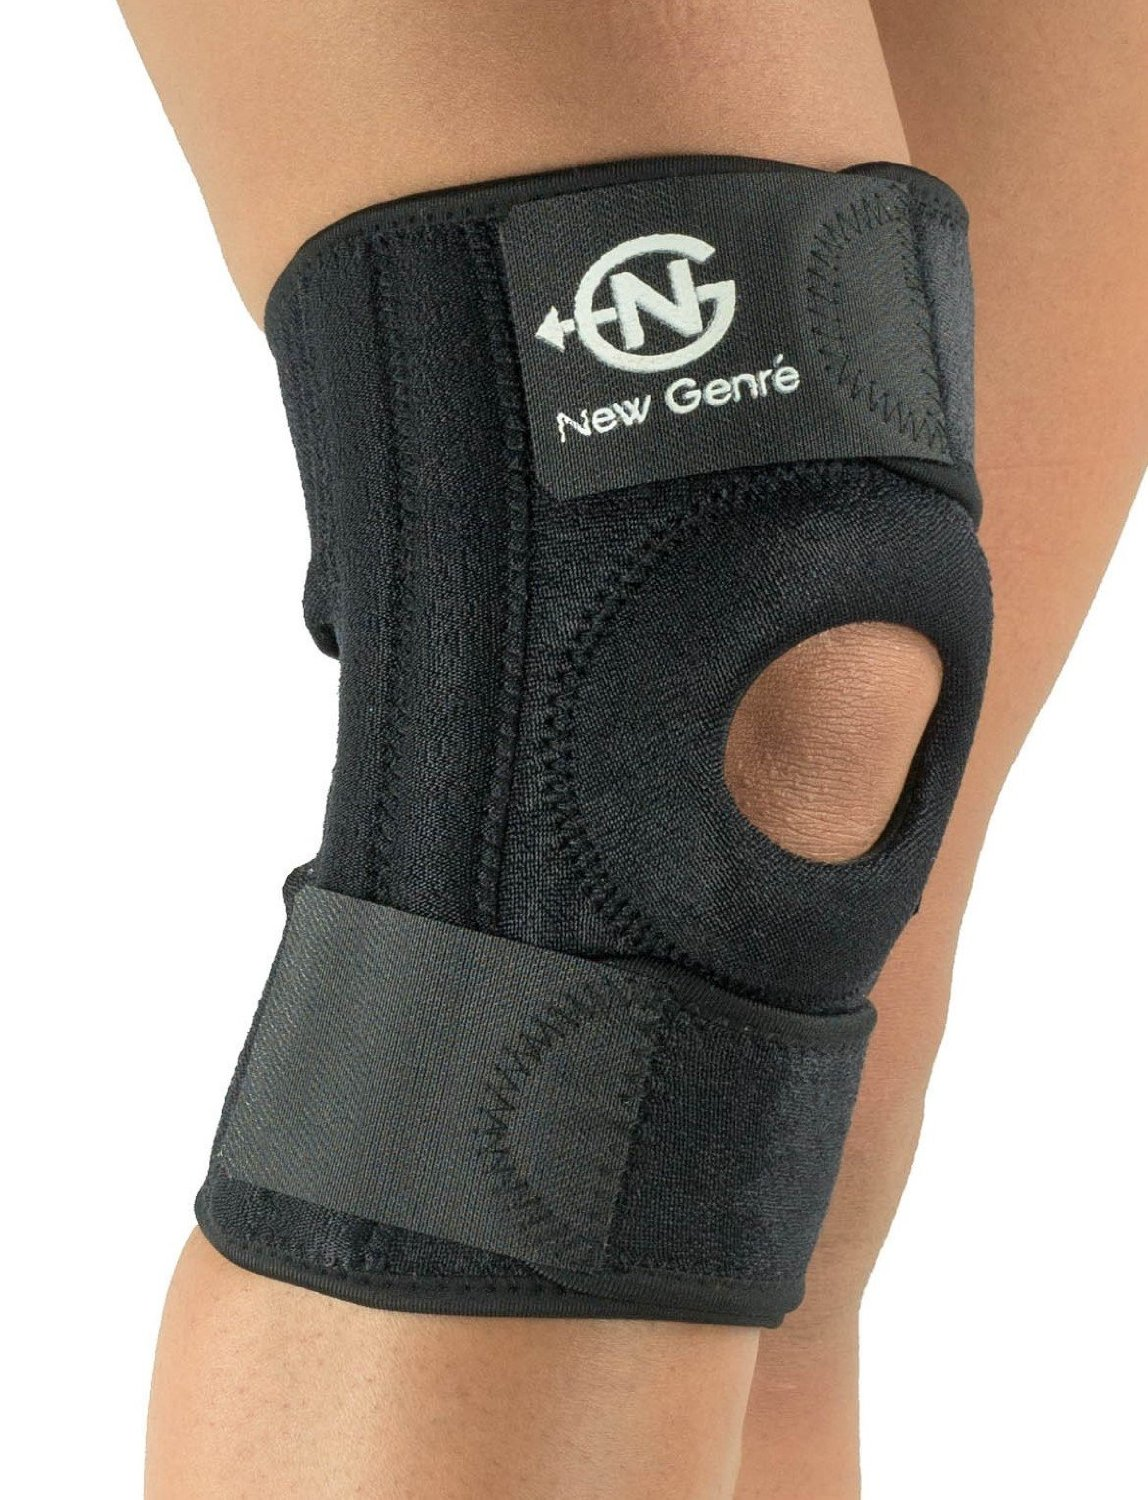 cffa6faabe Get Quotations · Knee Brace Support Sleeve(Black) by NG Sports,Adjustable  Strap Fits all SM